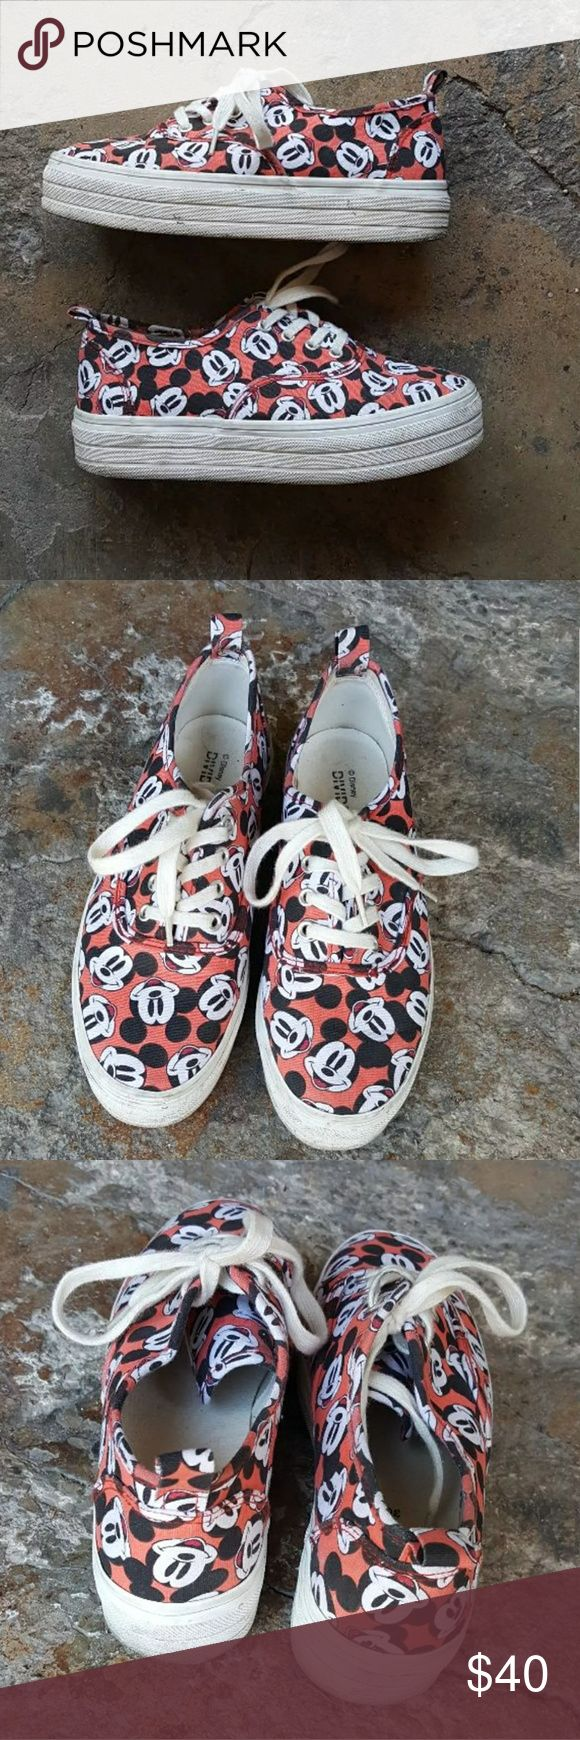 Platform Mickey mouse sneakers Platform Mickey Mouse sneakers. Gently loved. Marked size 5.5 but I'm a 7 and my toes are right at the edge so I'd say it'd also fit a 6 or smaller 6.5 comfortably. #mickeymouse #disney #platforms #platformsneakers Shoes Sneakers